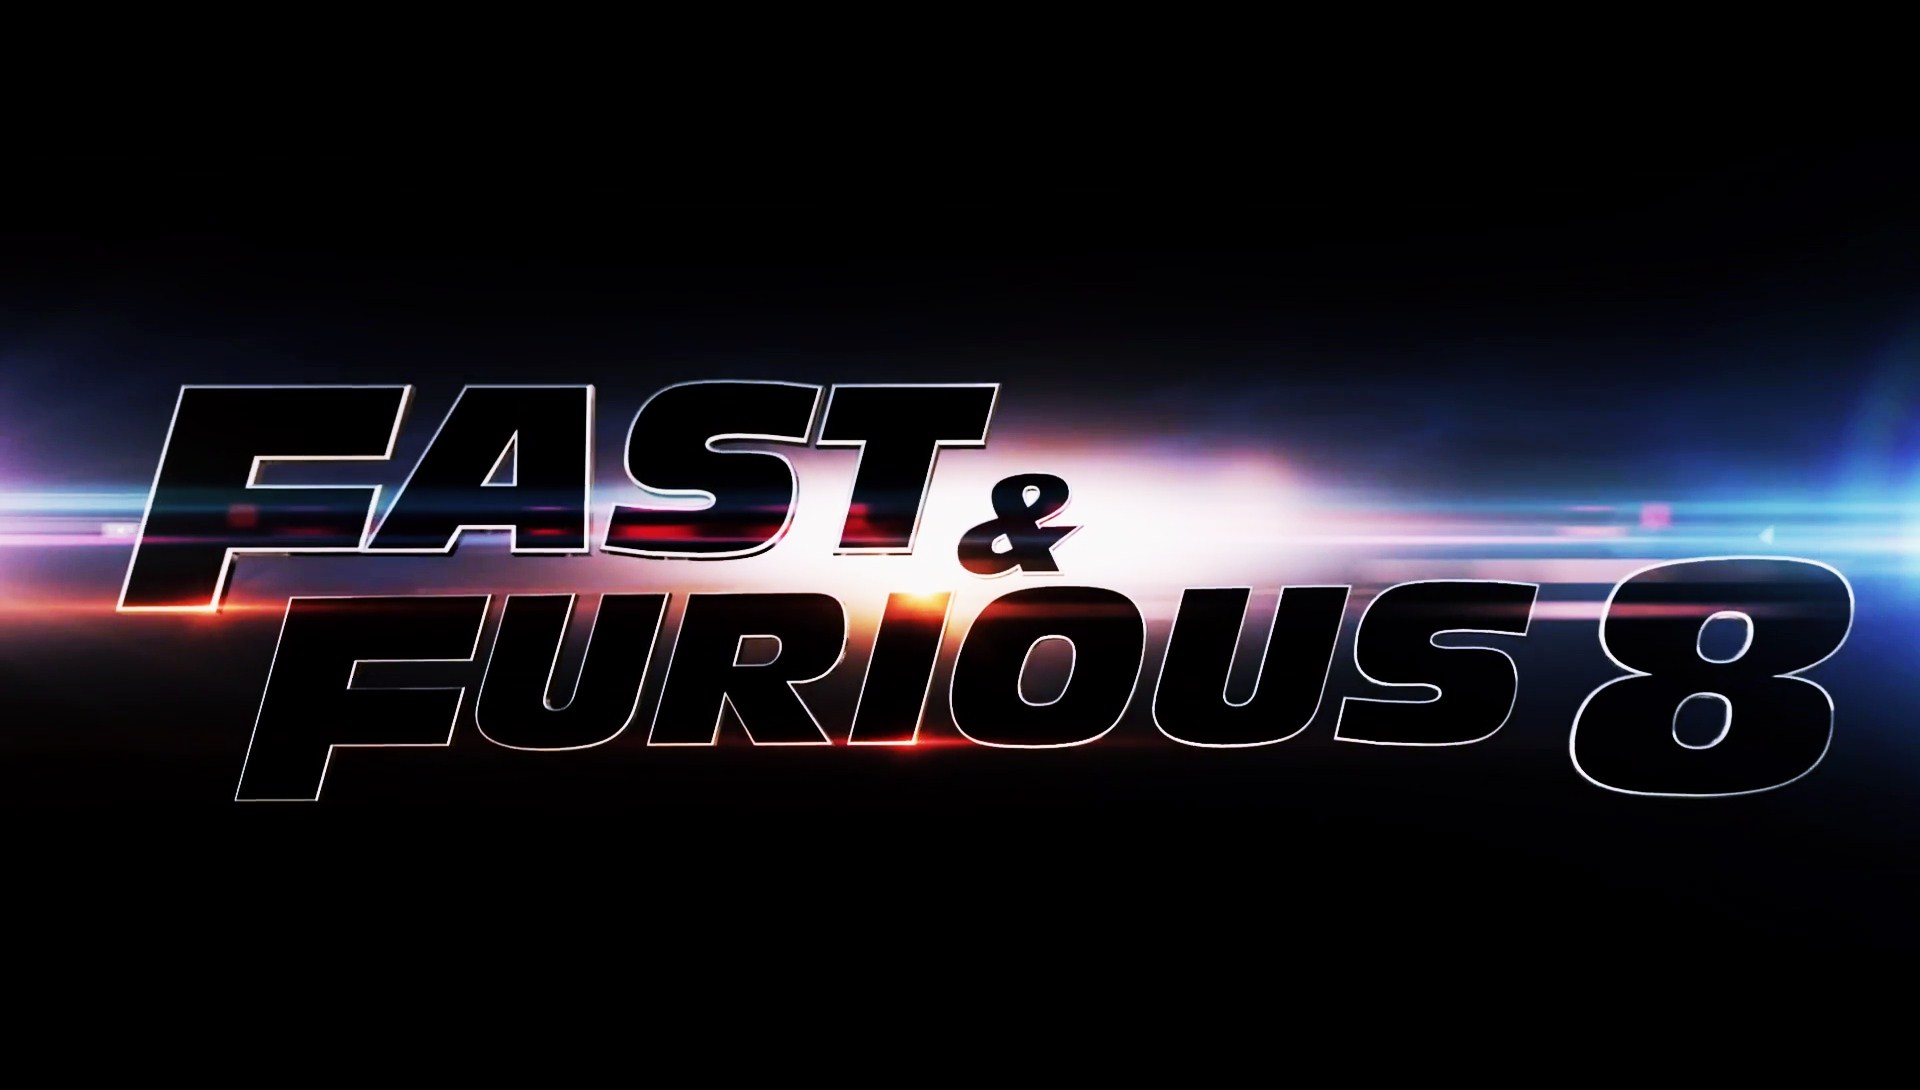 fast and furious 8 logo widescreen desktop wallpaper 1520